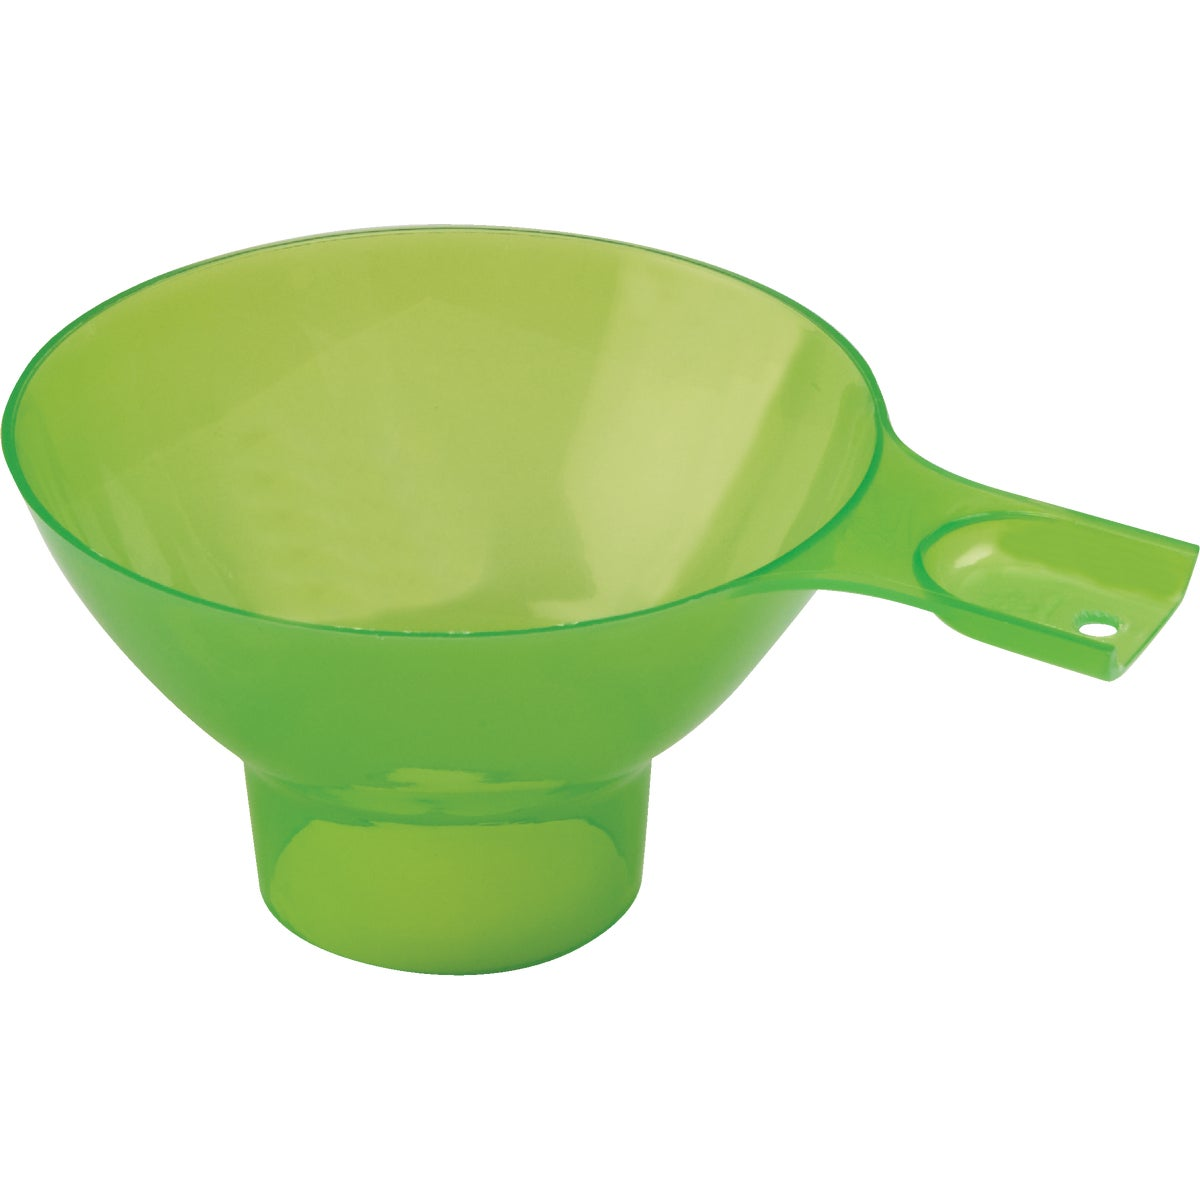 TRANSLUCENT FUNNEL - 1440010770 by Jarden Home Brands